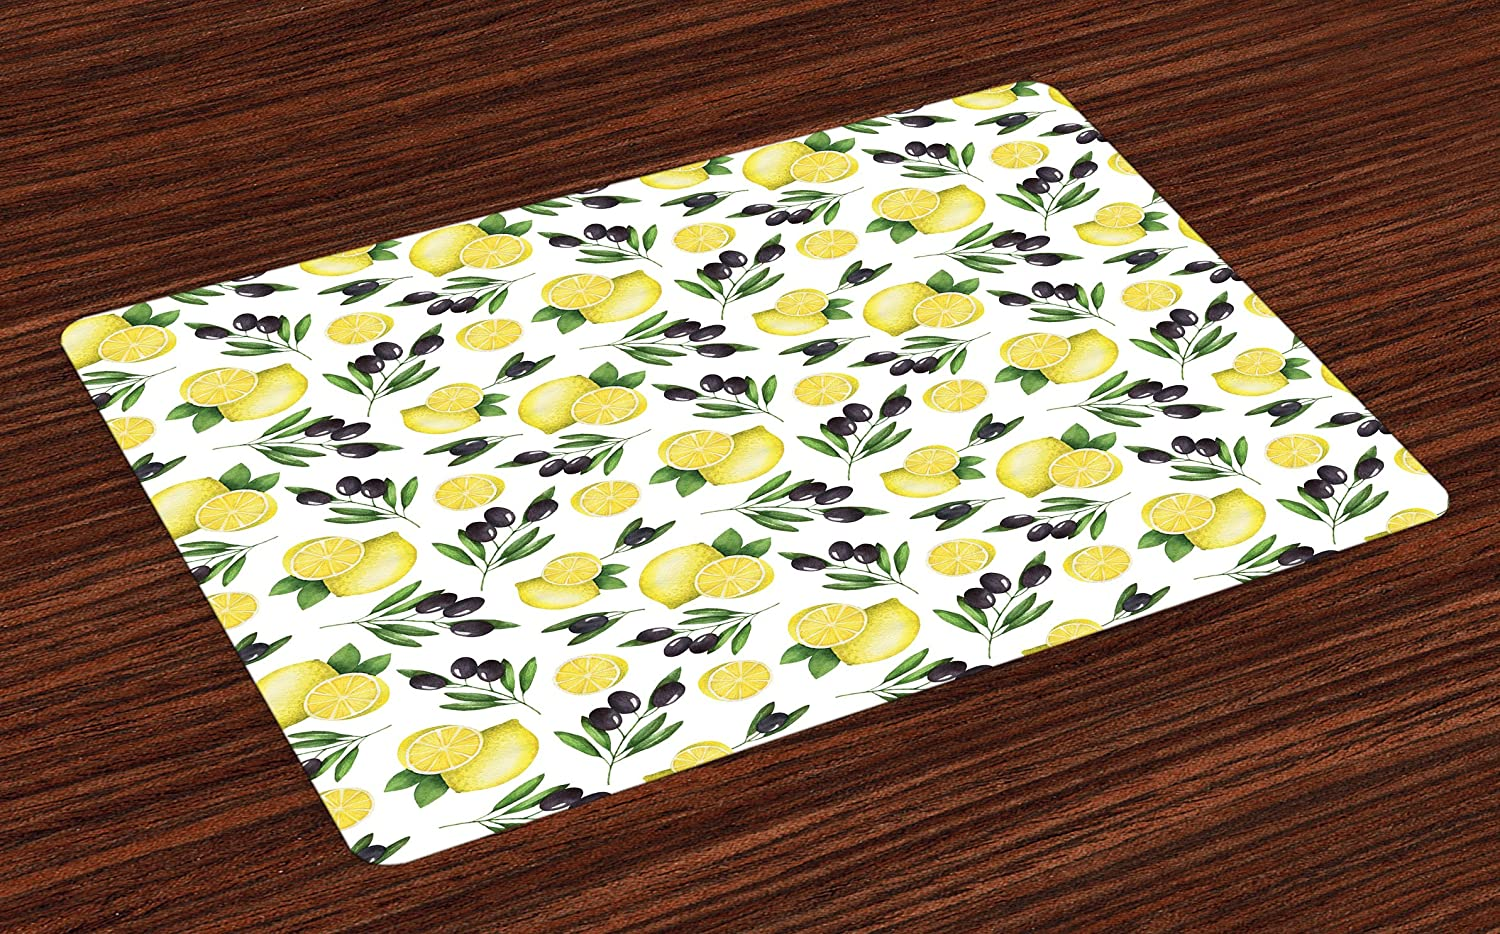 Lunarable Vintage Place Mats Set of 4, Watercolors Painted Pattern of Olives and Lemons Healthy Mediterranean Food, Washable Fabric Placemats for Dining Room Kitchen Table Decor, Yellow Black Green